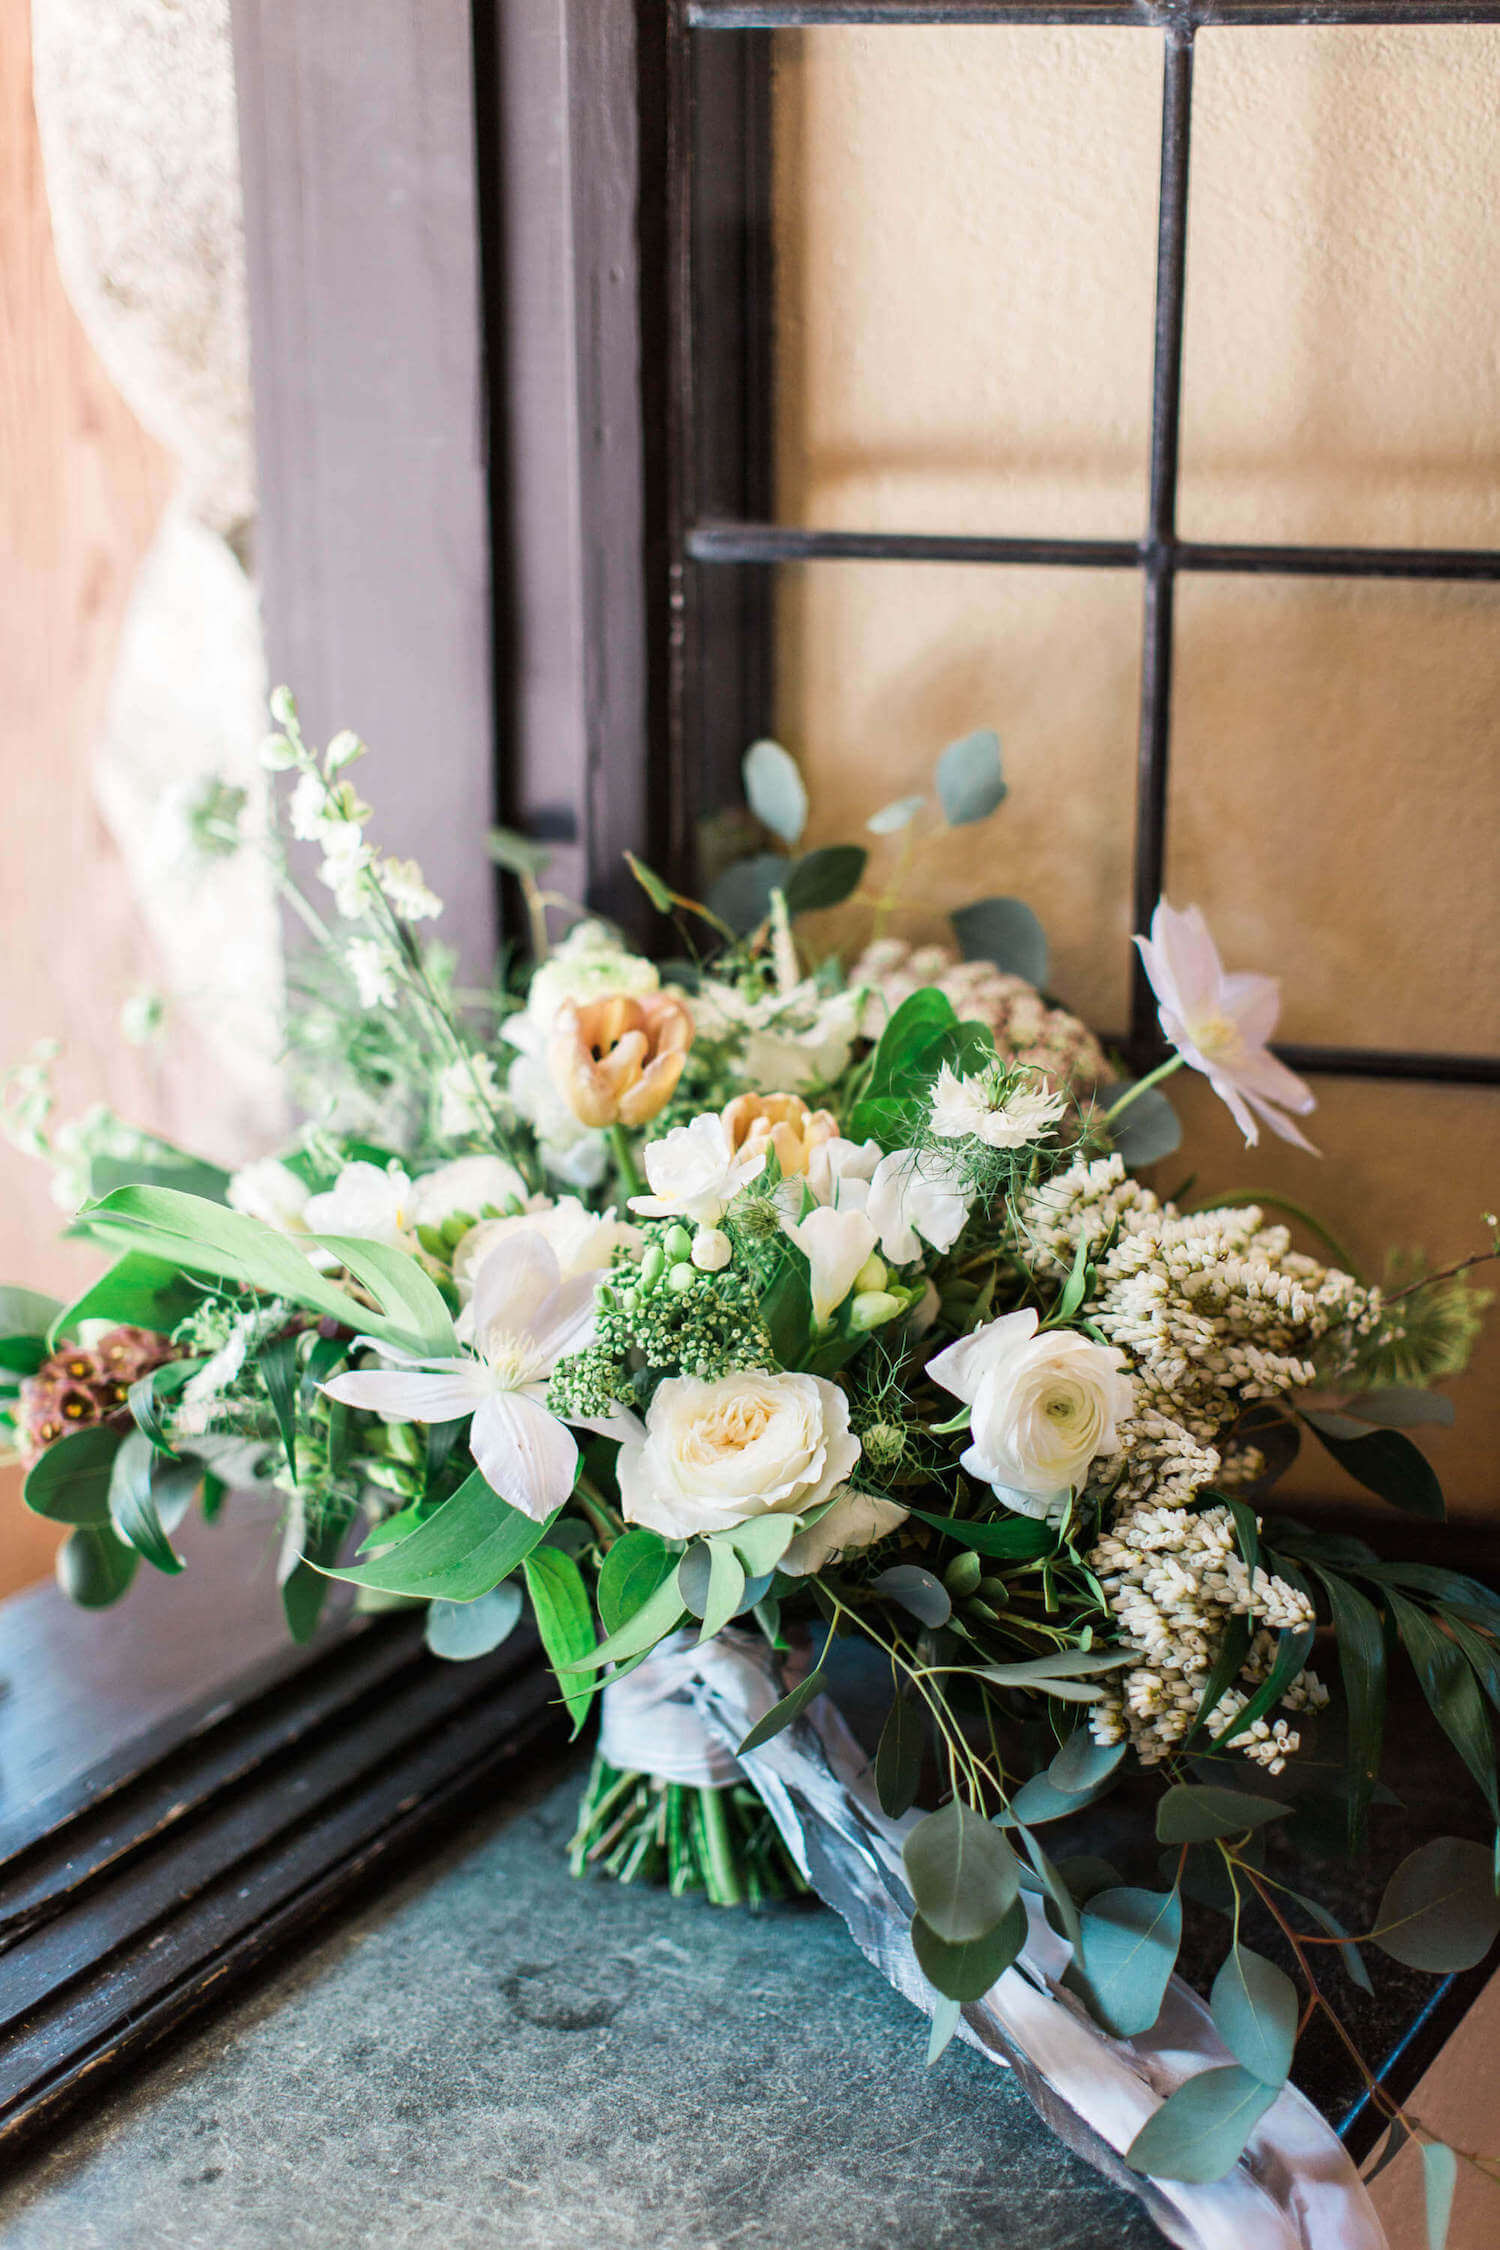 elegant-wedding-bouquet-white-greenery.jpg